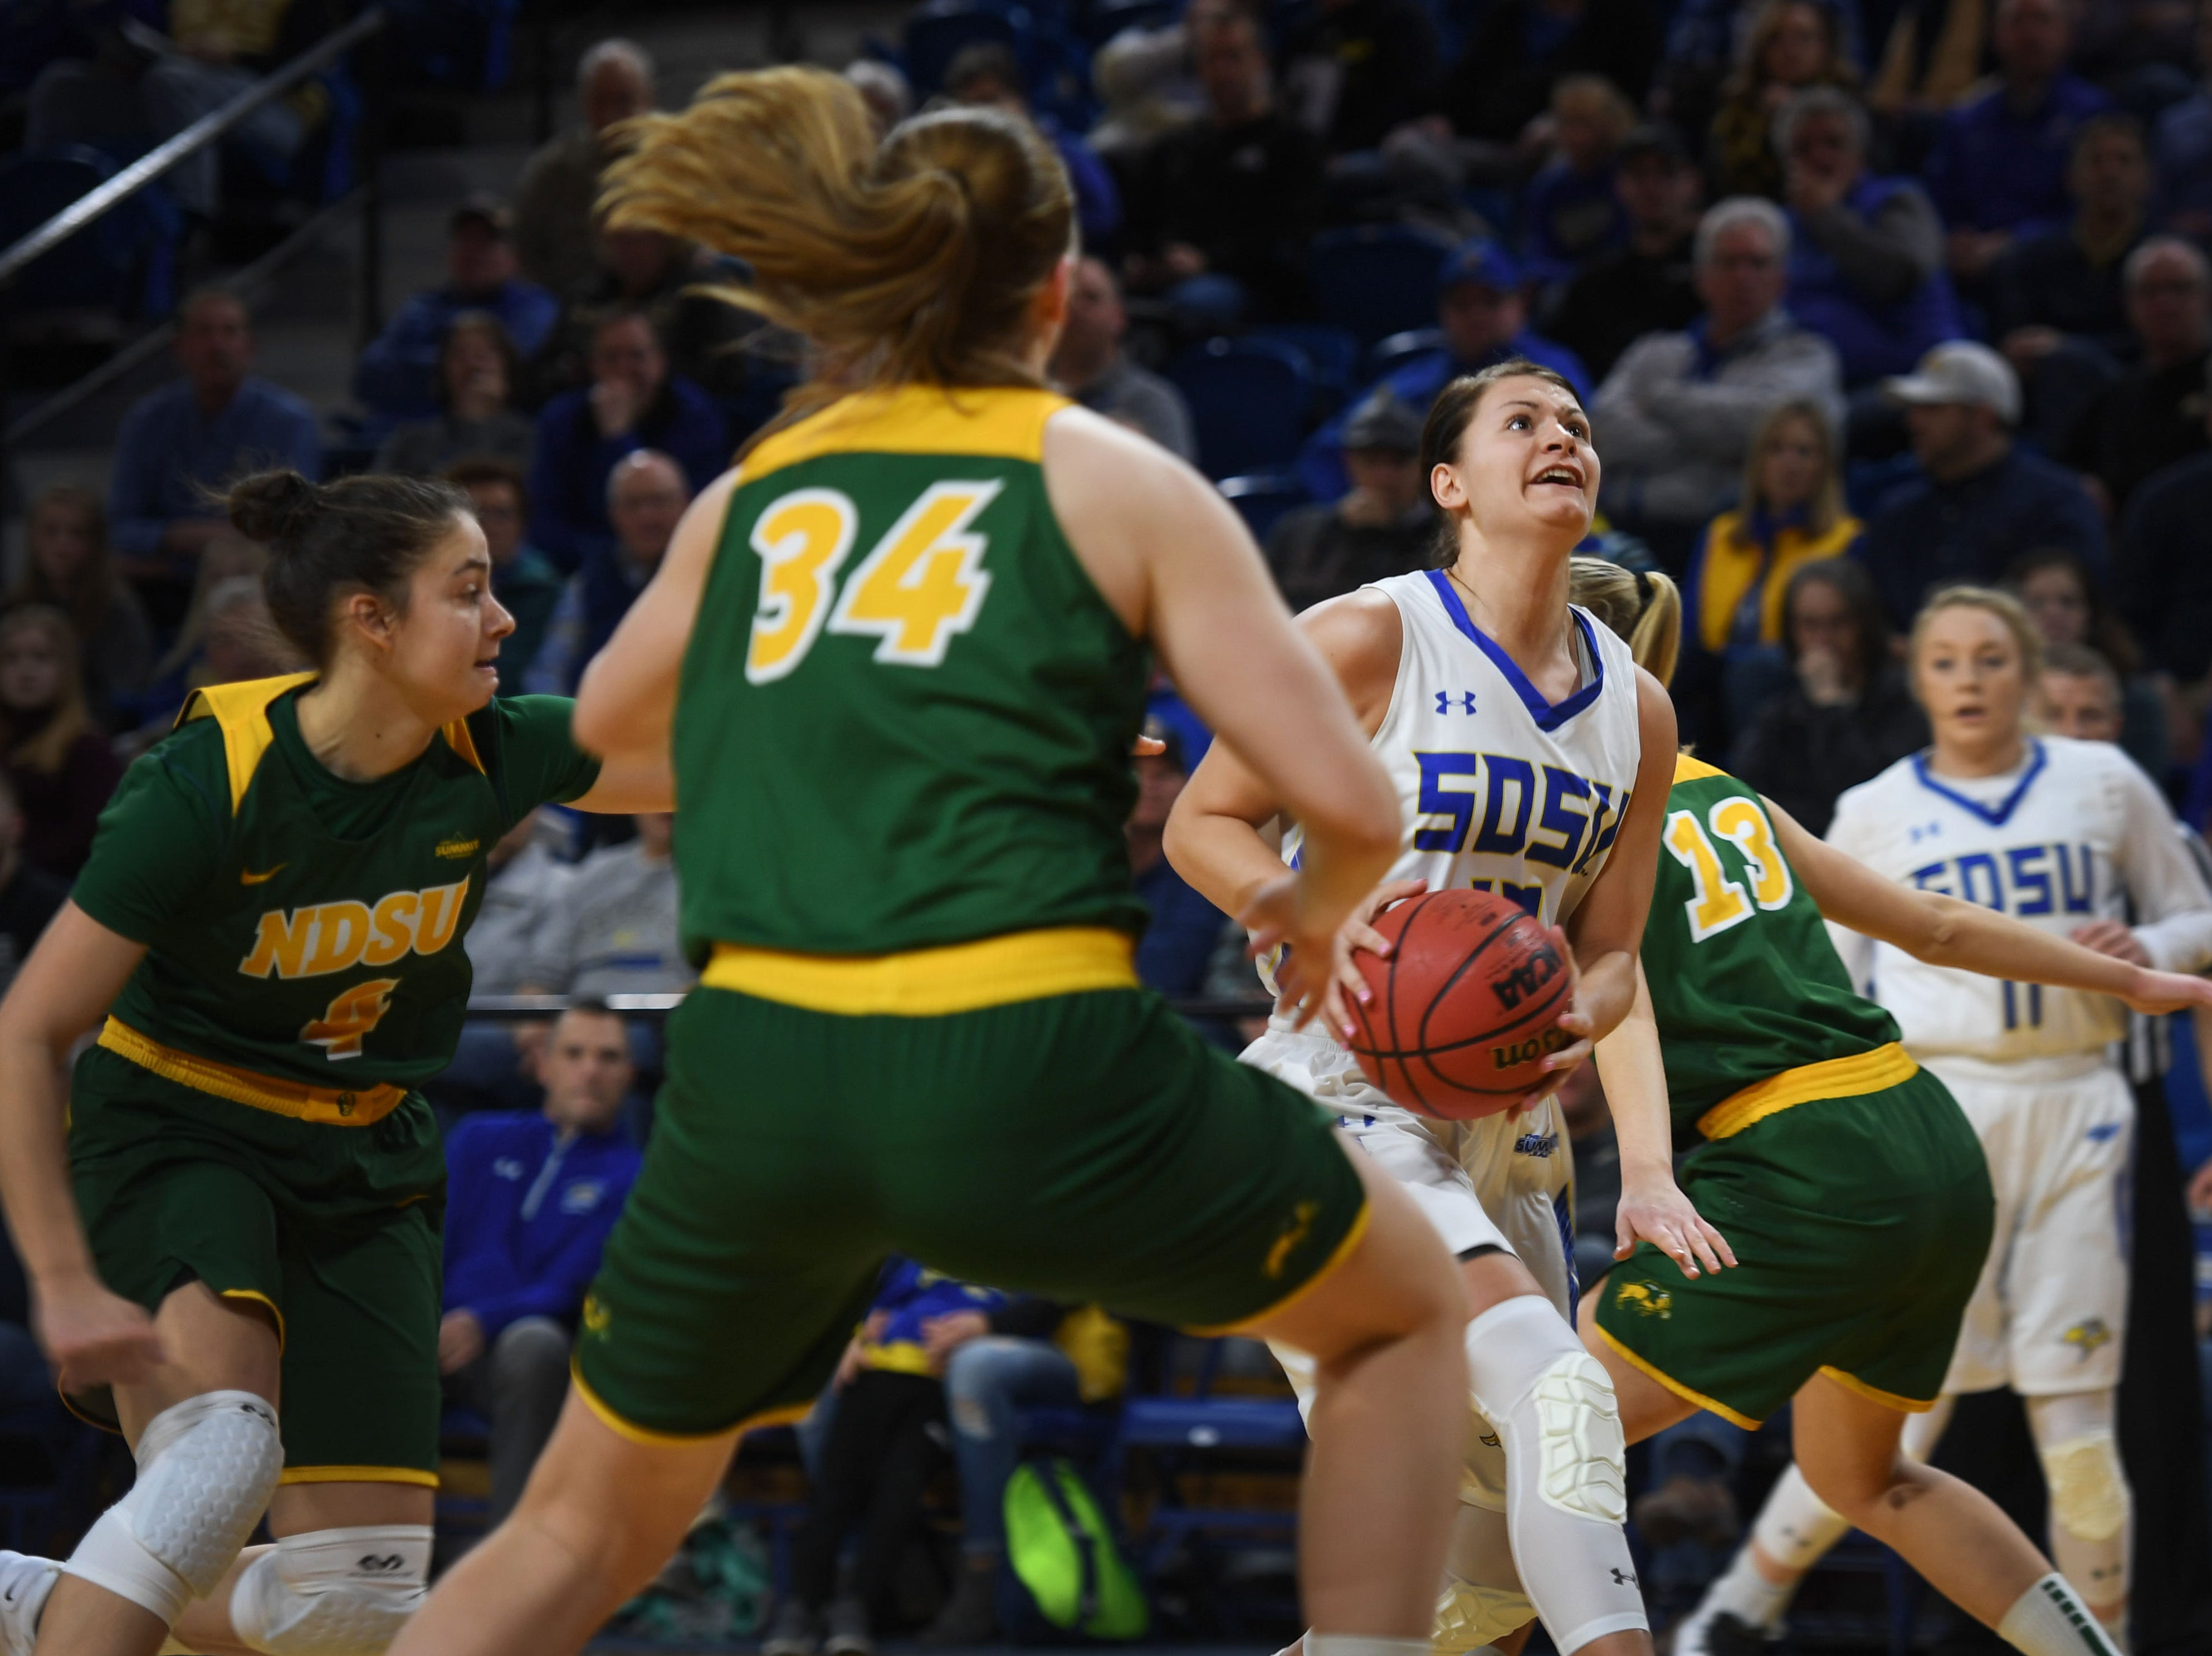 SDSU's Macy Miller goes against NDSU defense during the game Wednesday, Jan. 23, at Frost Arena in Brookings.